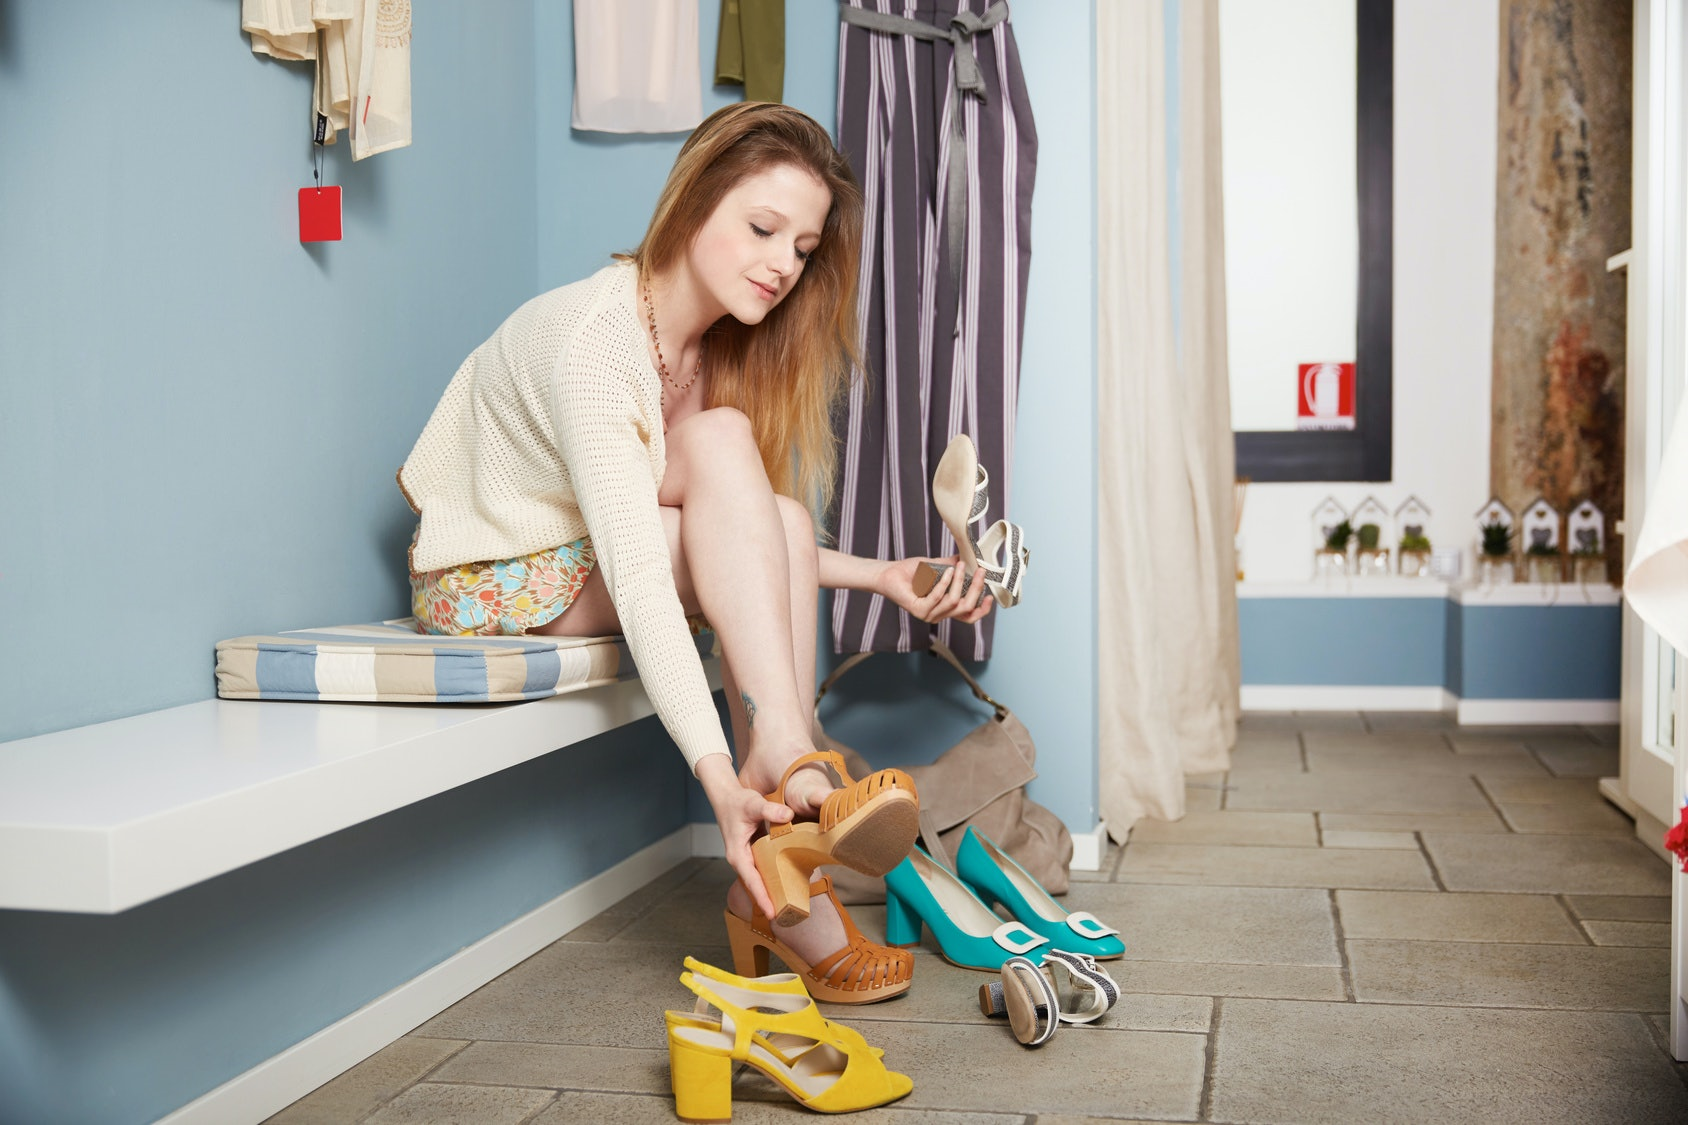 How To Make Old Shoes Look New Again With 10 Genius Hacks